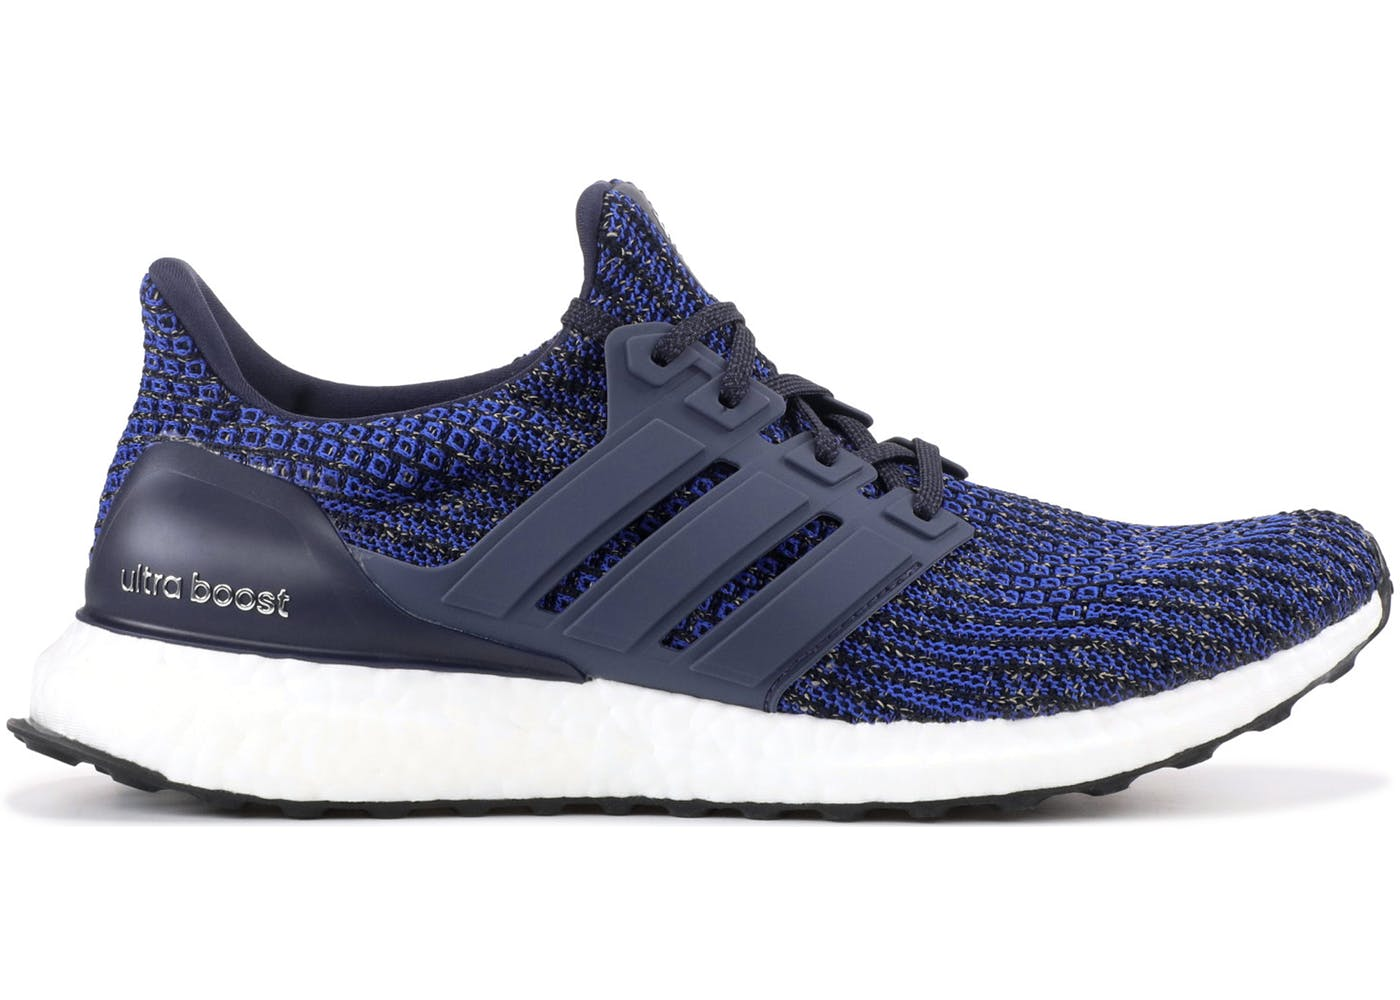 dd9f3c77f989a Mens Adidas Ultra Boost 1.0 Cheap Online Limited Edition Trainers ...